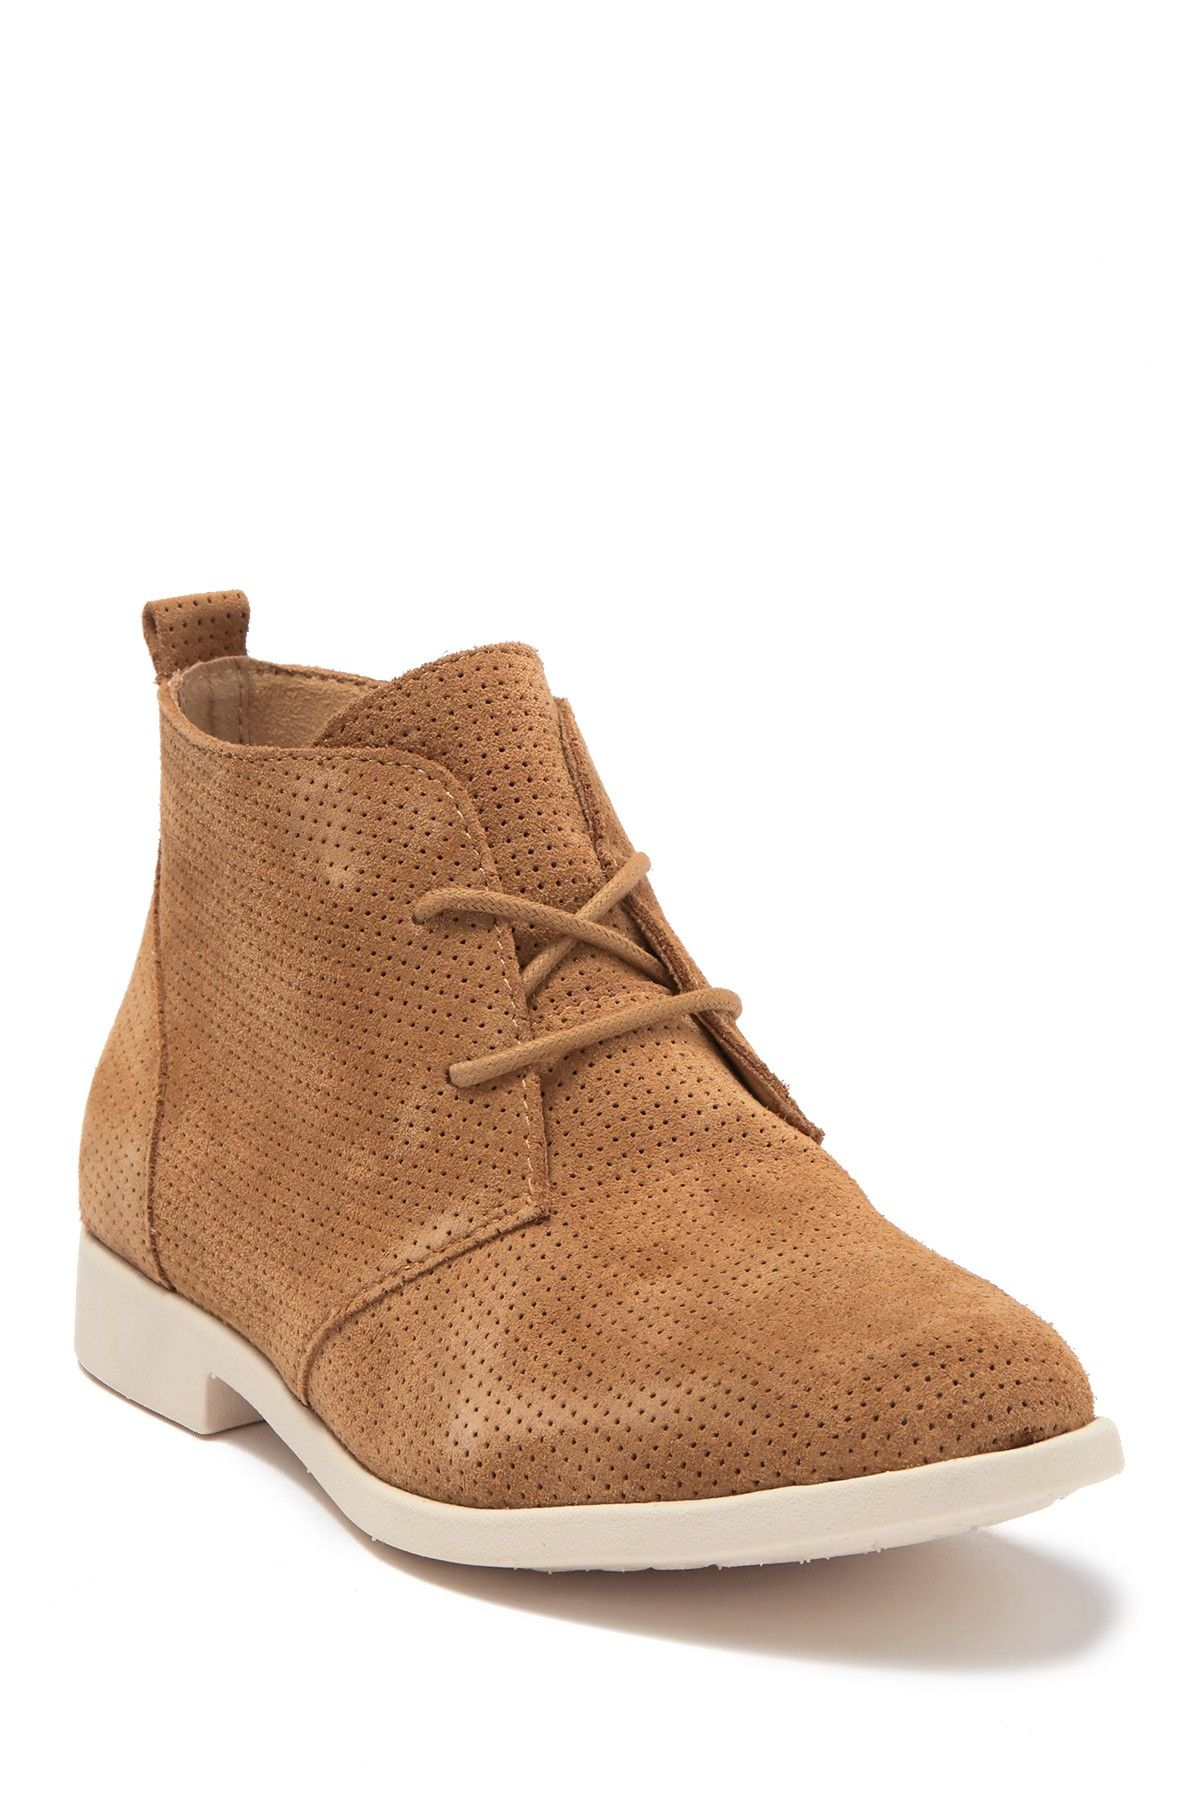 bazu perforated suede chukka boot